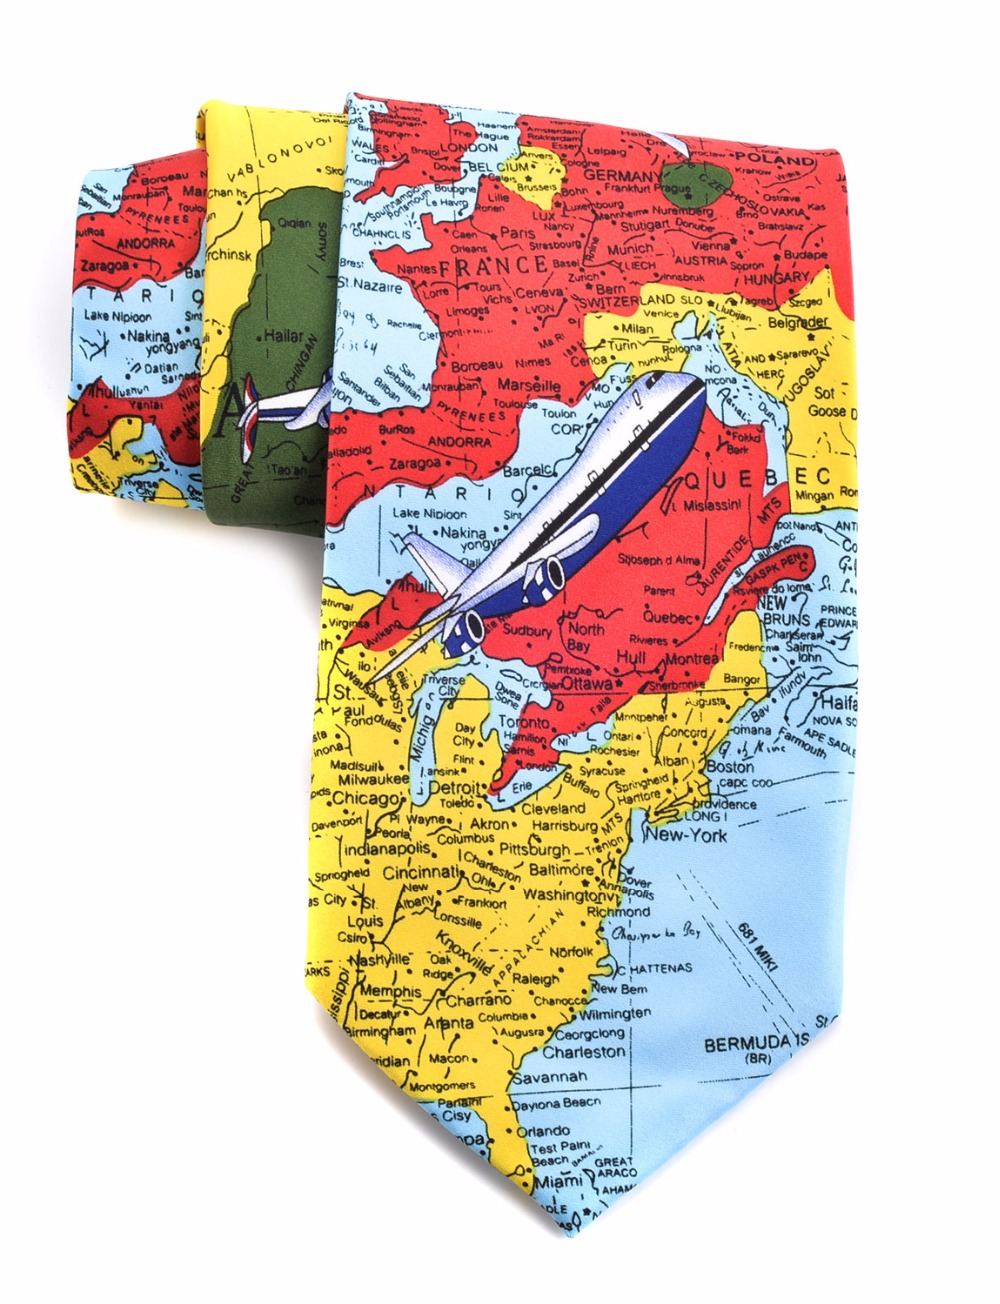 Fuerjia2017 innovative design 10cm wide high grade polyester fuerjia2017 innovative design 10cm wide high grade polyester fabric interesting map tie universal print tie wholesale in ties handkerchiefs from mens gumiabroncs Images